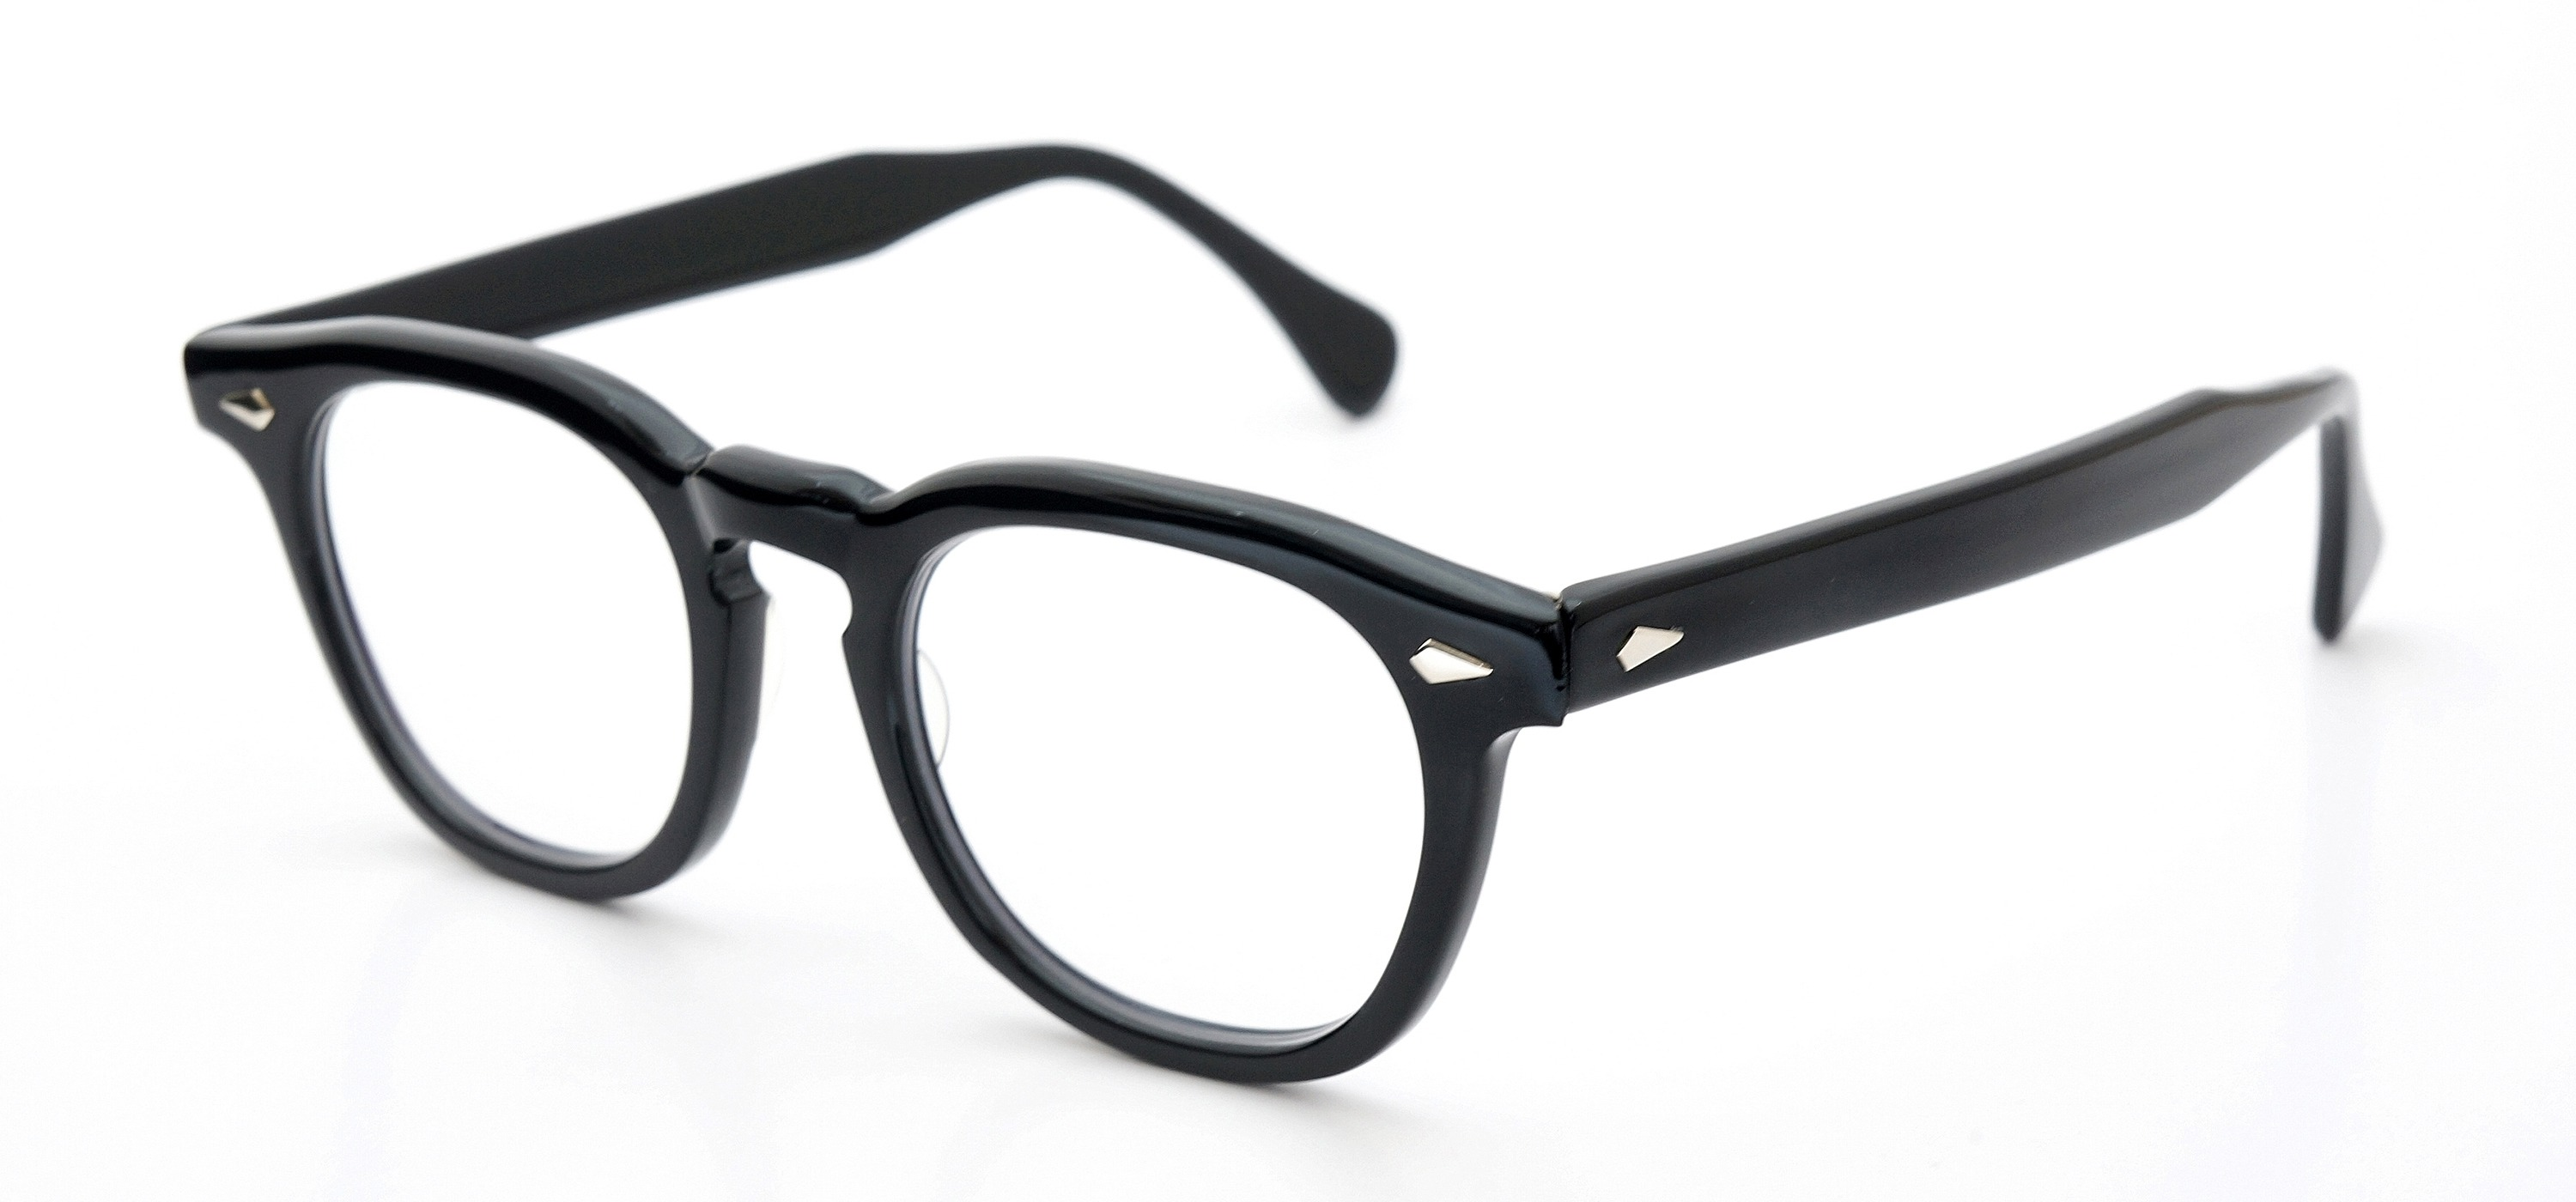 The Spectacle メガネ 1950s-70s TART OPTICAL ARNEL(FRAME USA) BLACK 48-22 イメージ3